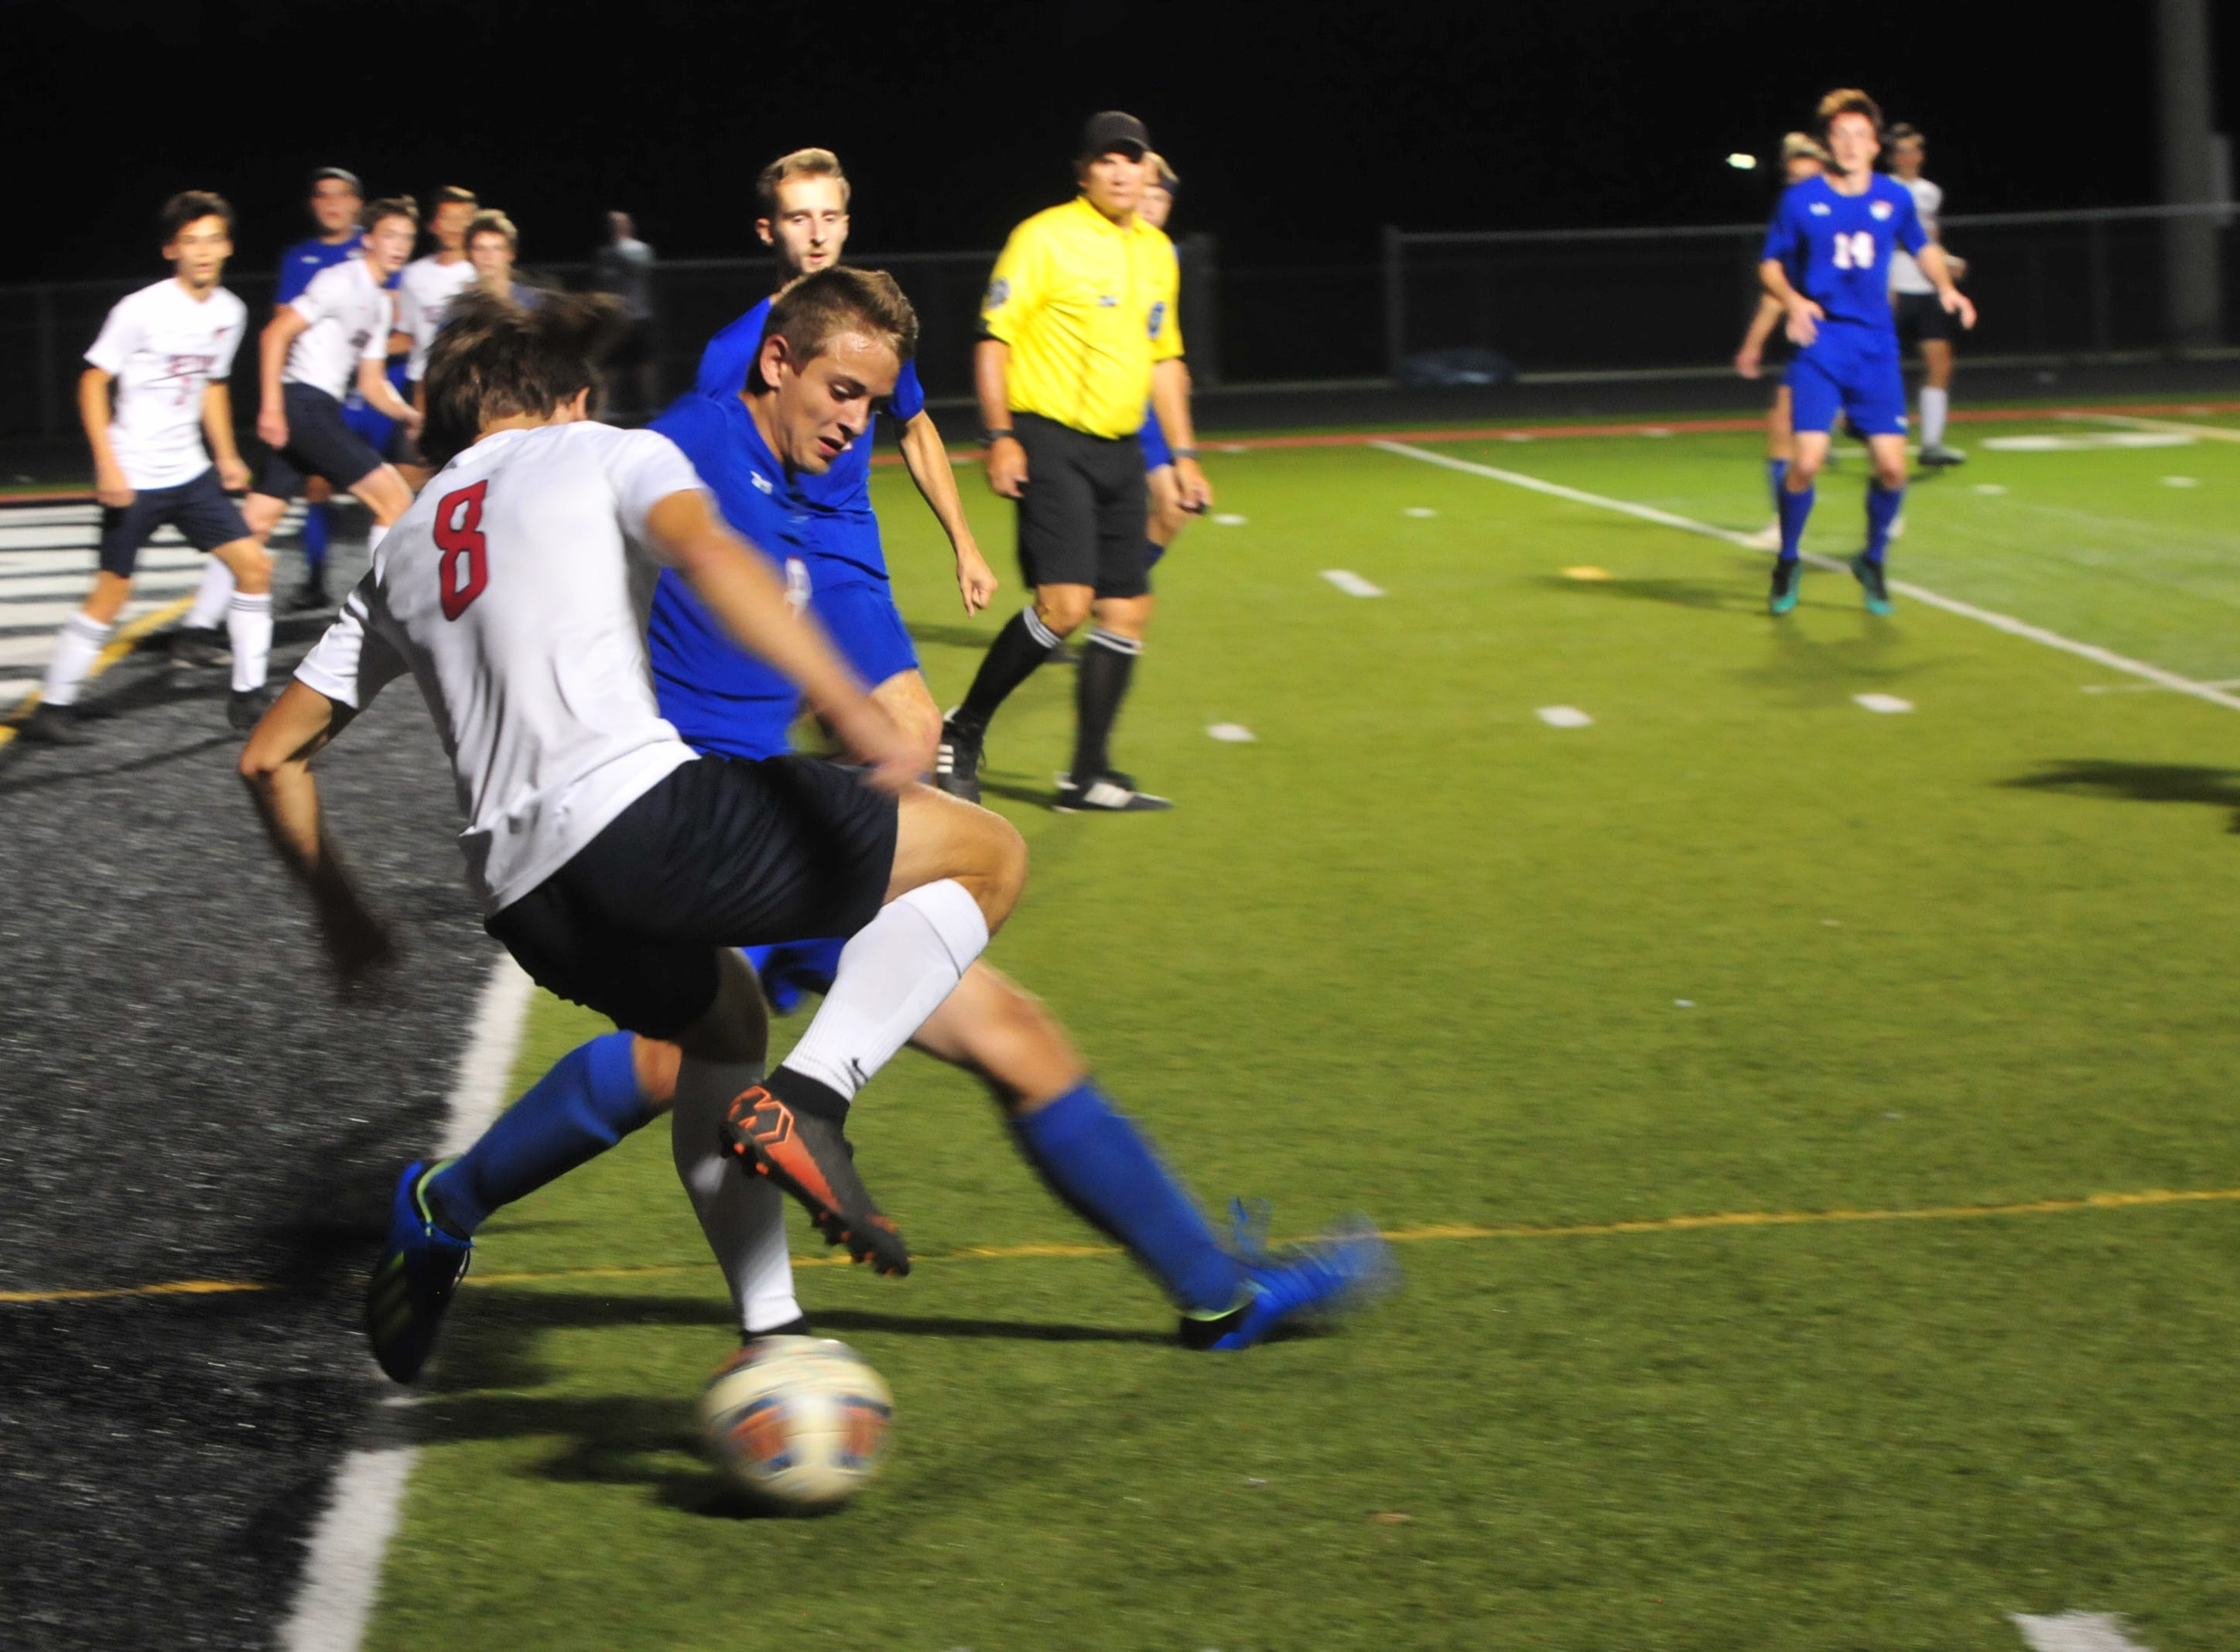 Seton Catholic's Nick Berger (left) and Union County's Brandon Olsen (right) battle for the ball during the IHSAA Class A Sectional 42 boys soccer semifinal at Knightstown Wednesday, Oct. 3, 2018.